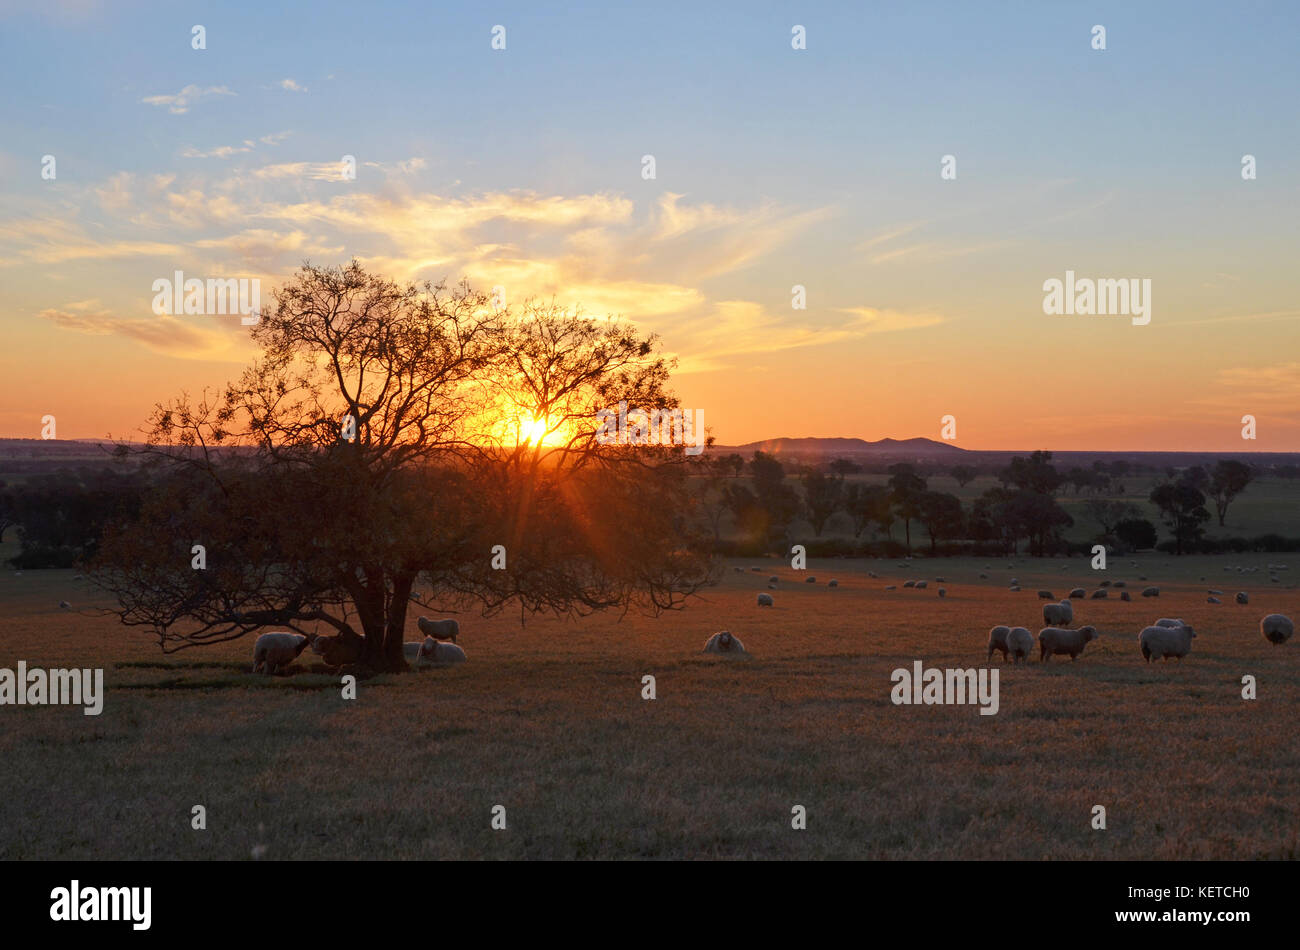 Country dating nsw